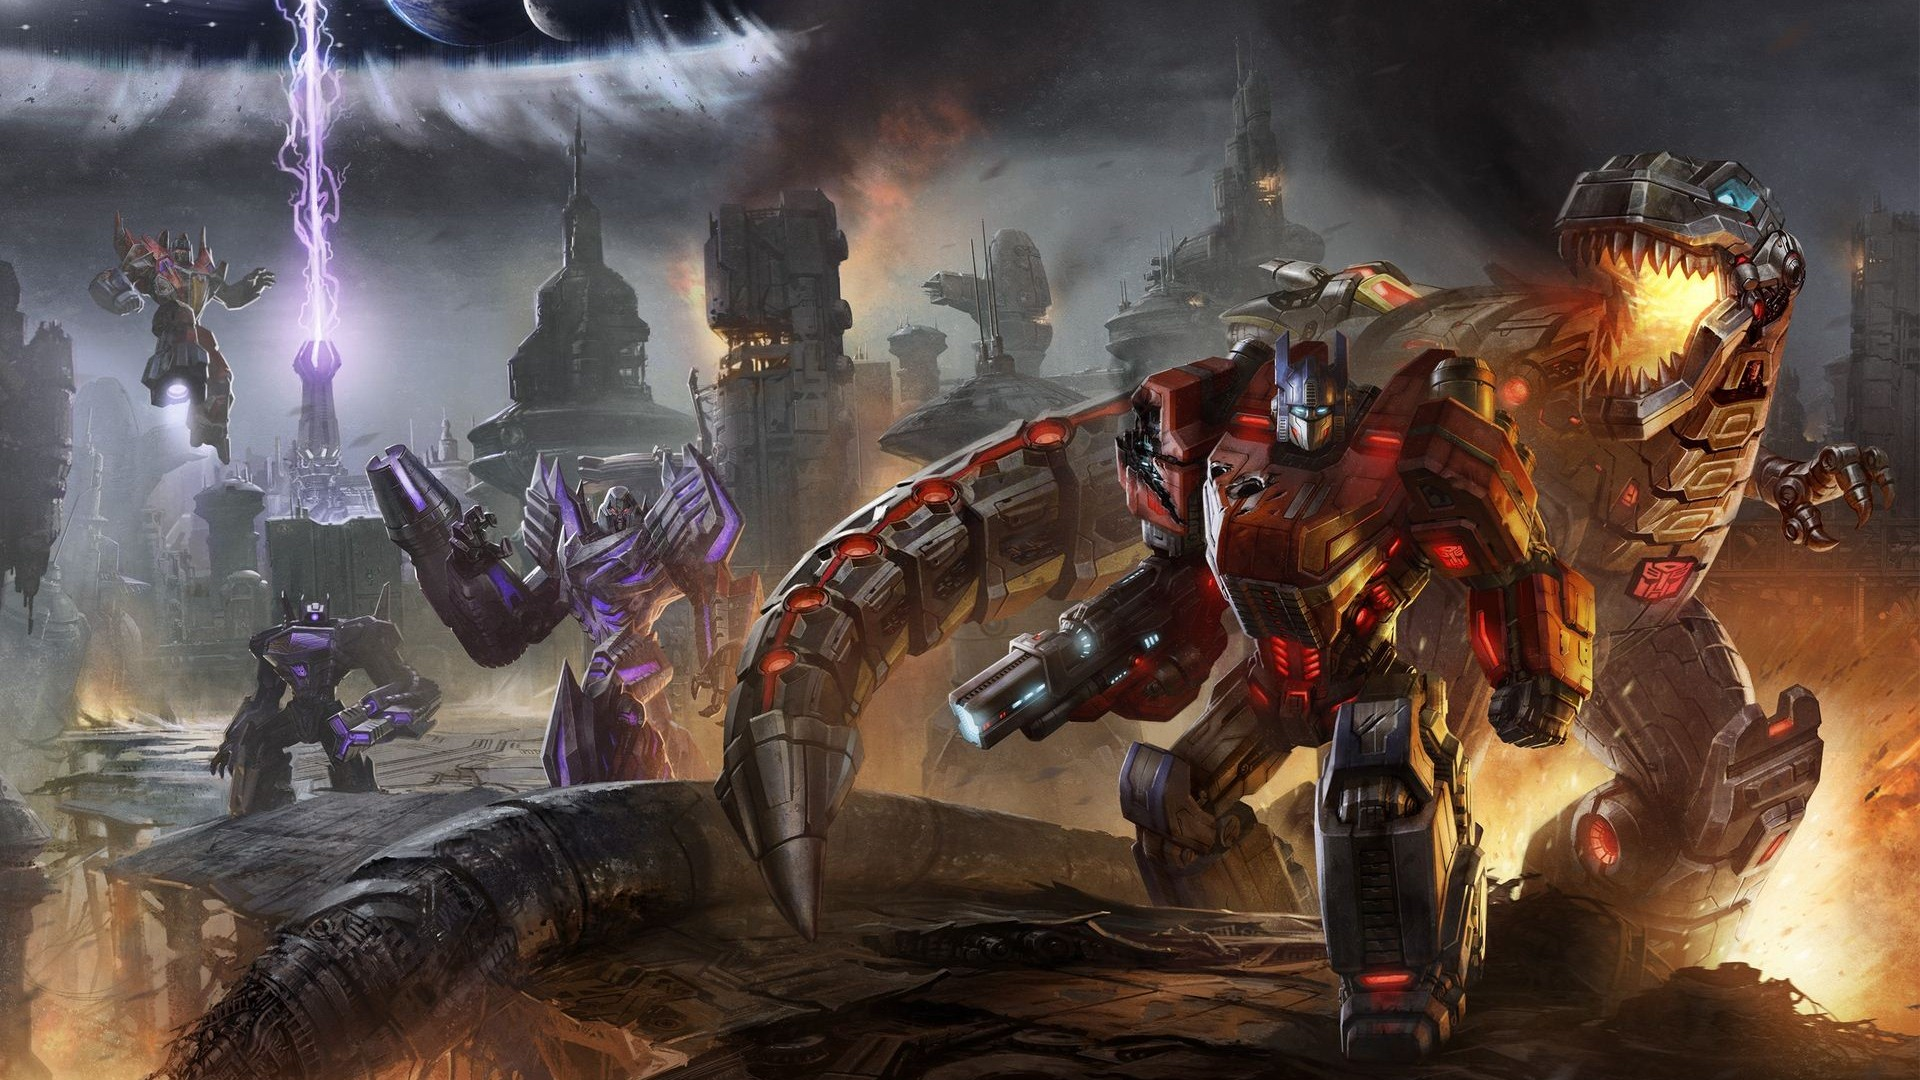 transformers fall of cybertron wallpaper (hd)